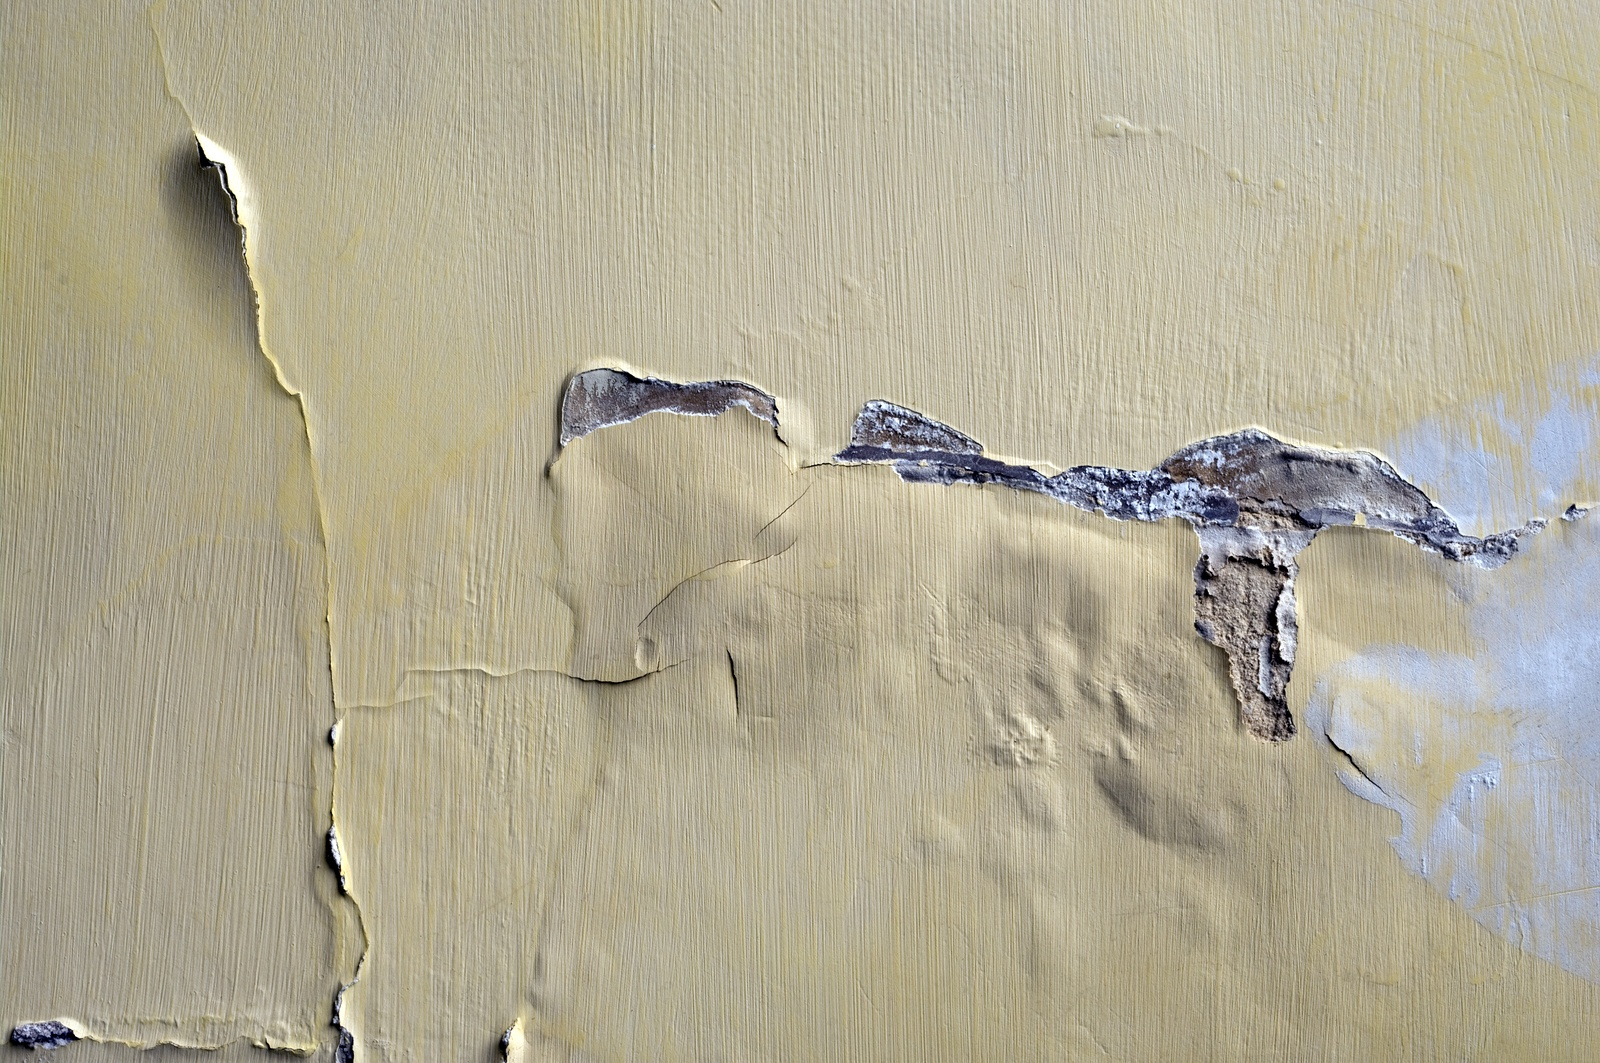 bubbling-on-interior-plaster-wall.jpg